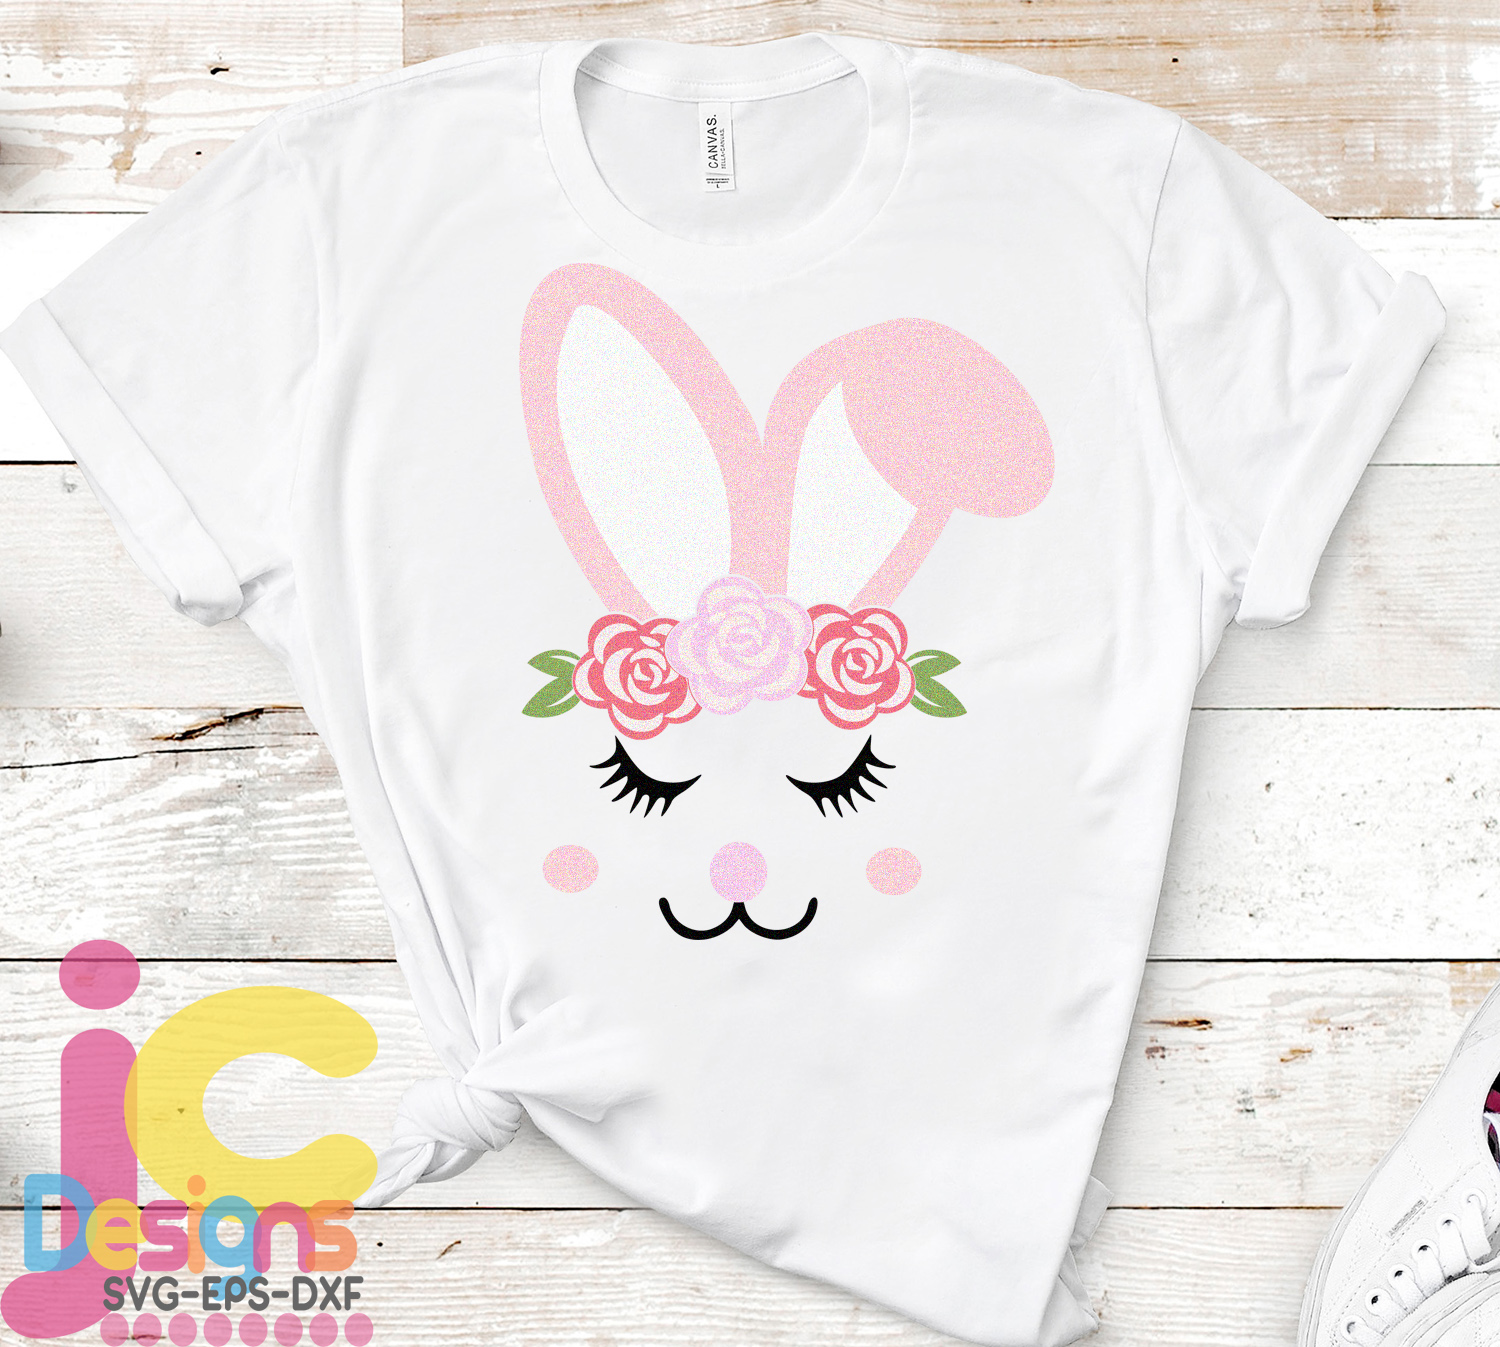 Floral Girl Easter Bunny Face Eyelashes svg, eps, dxf example image 2